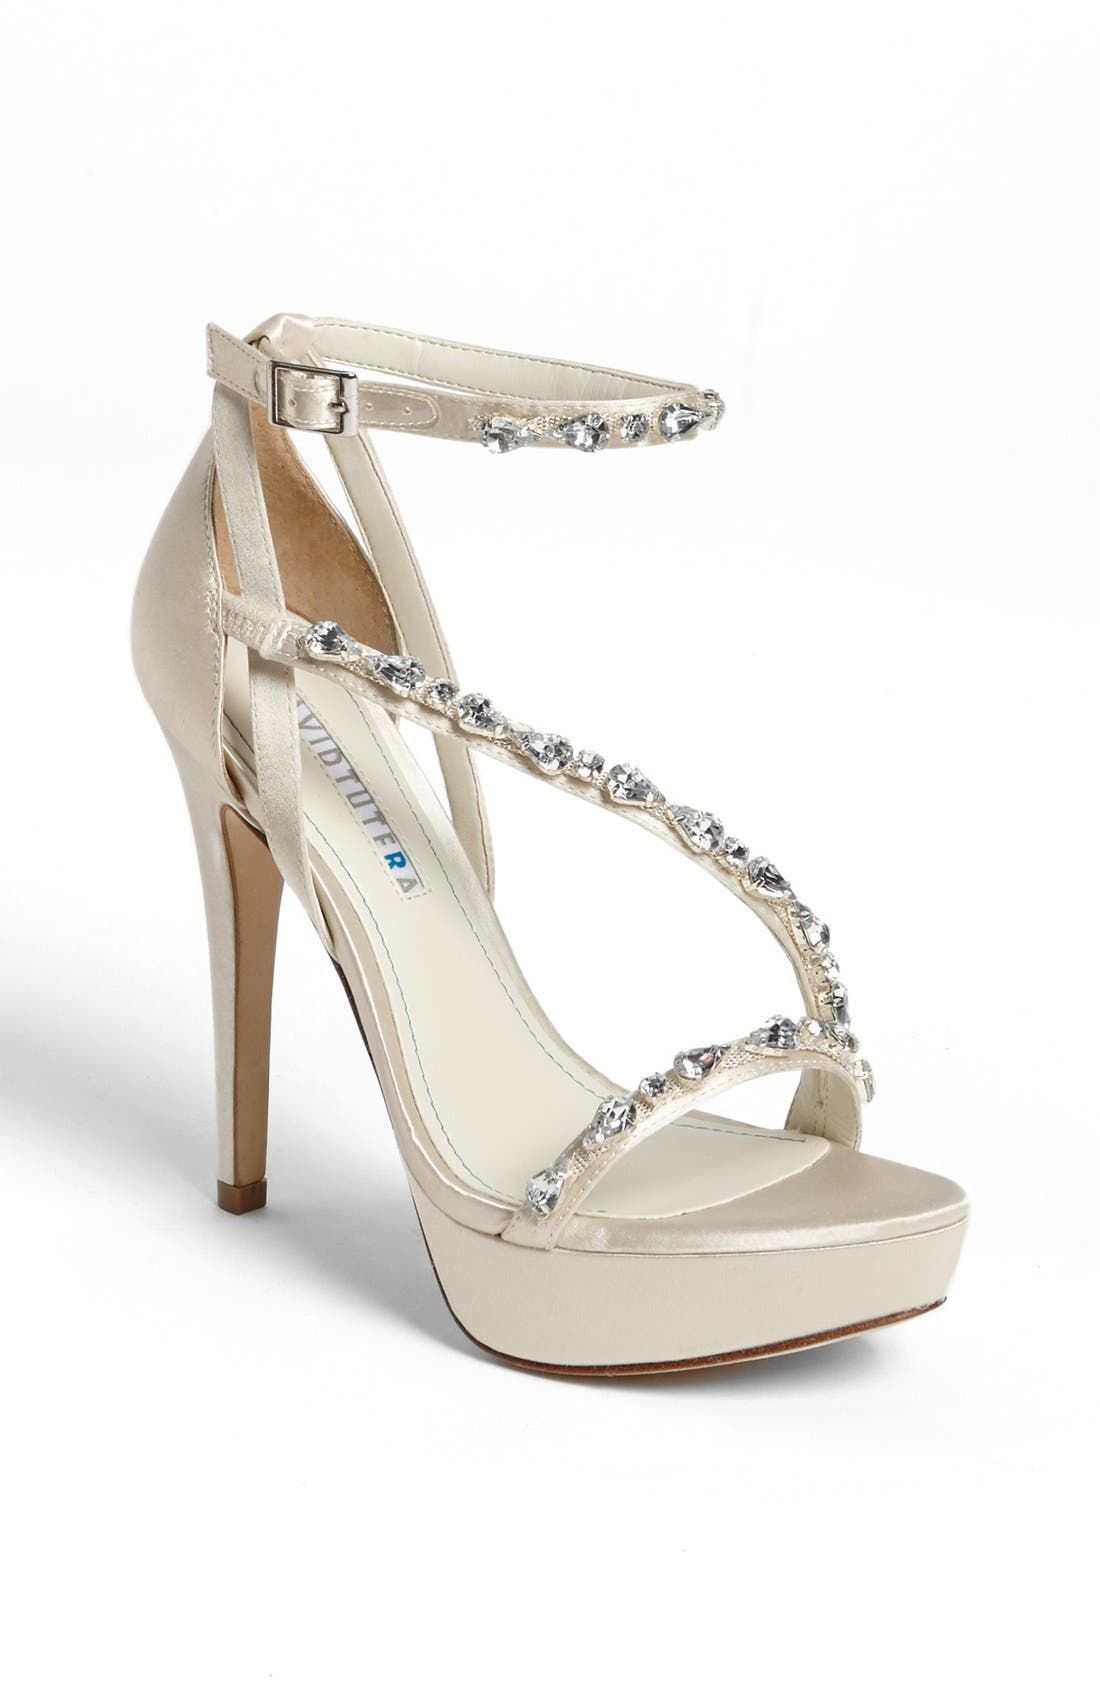 Alternate Image 1 Selected - David Tutera 'Cascade' Pump (Online Only)